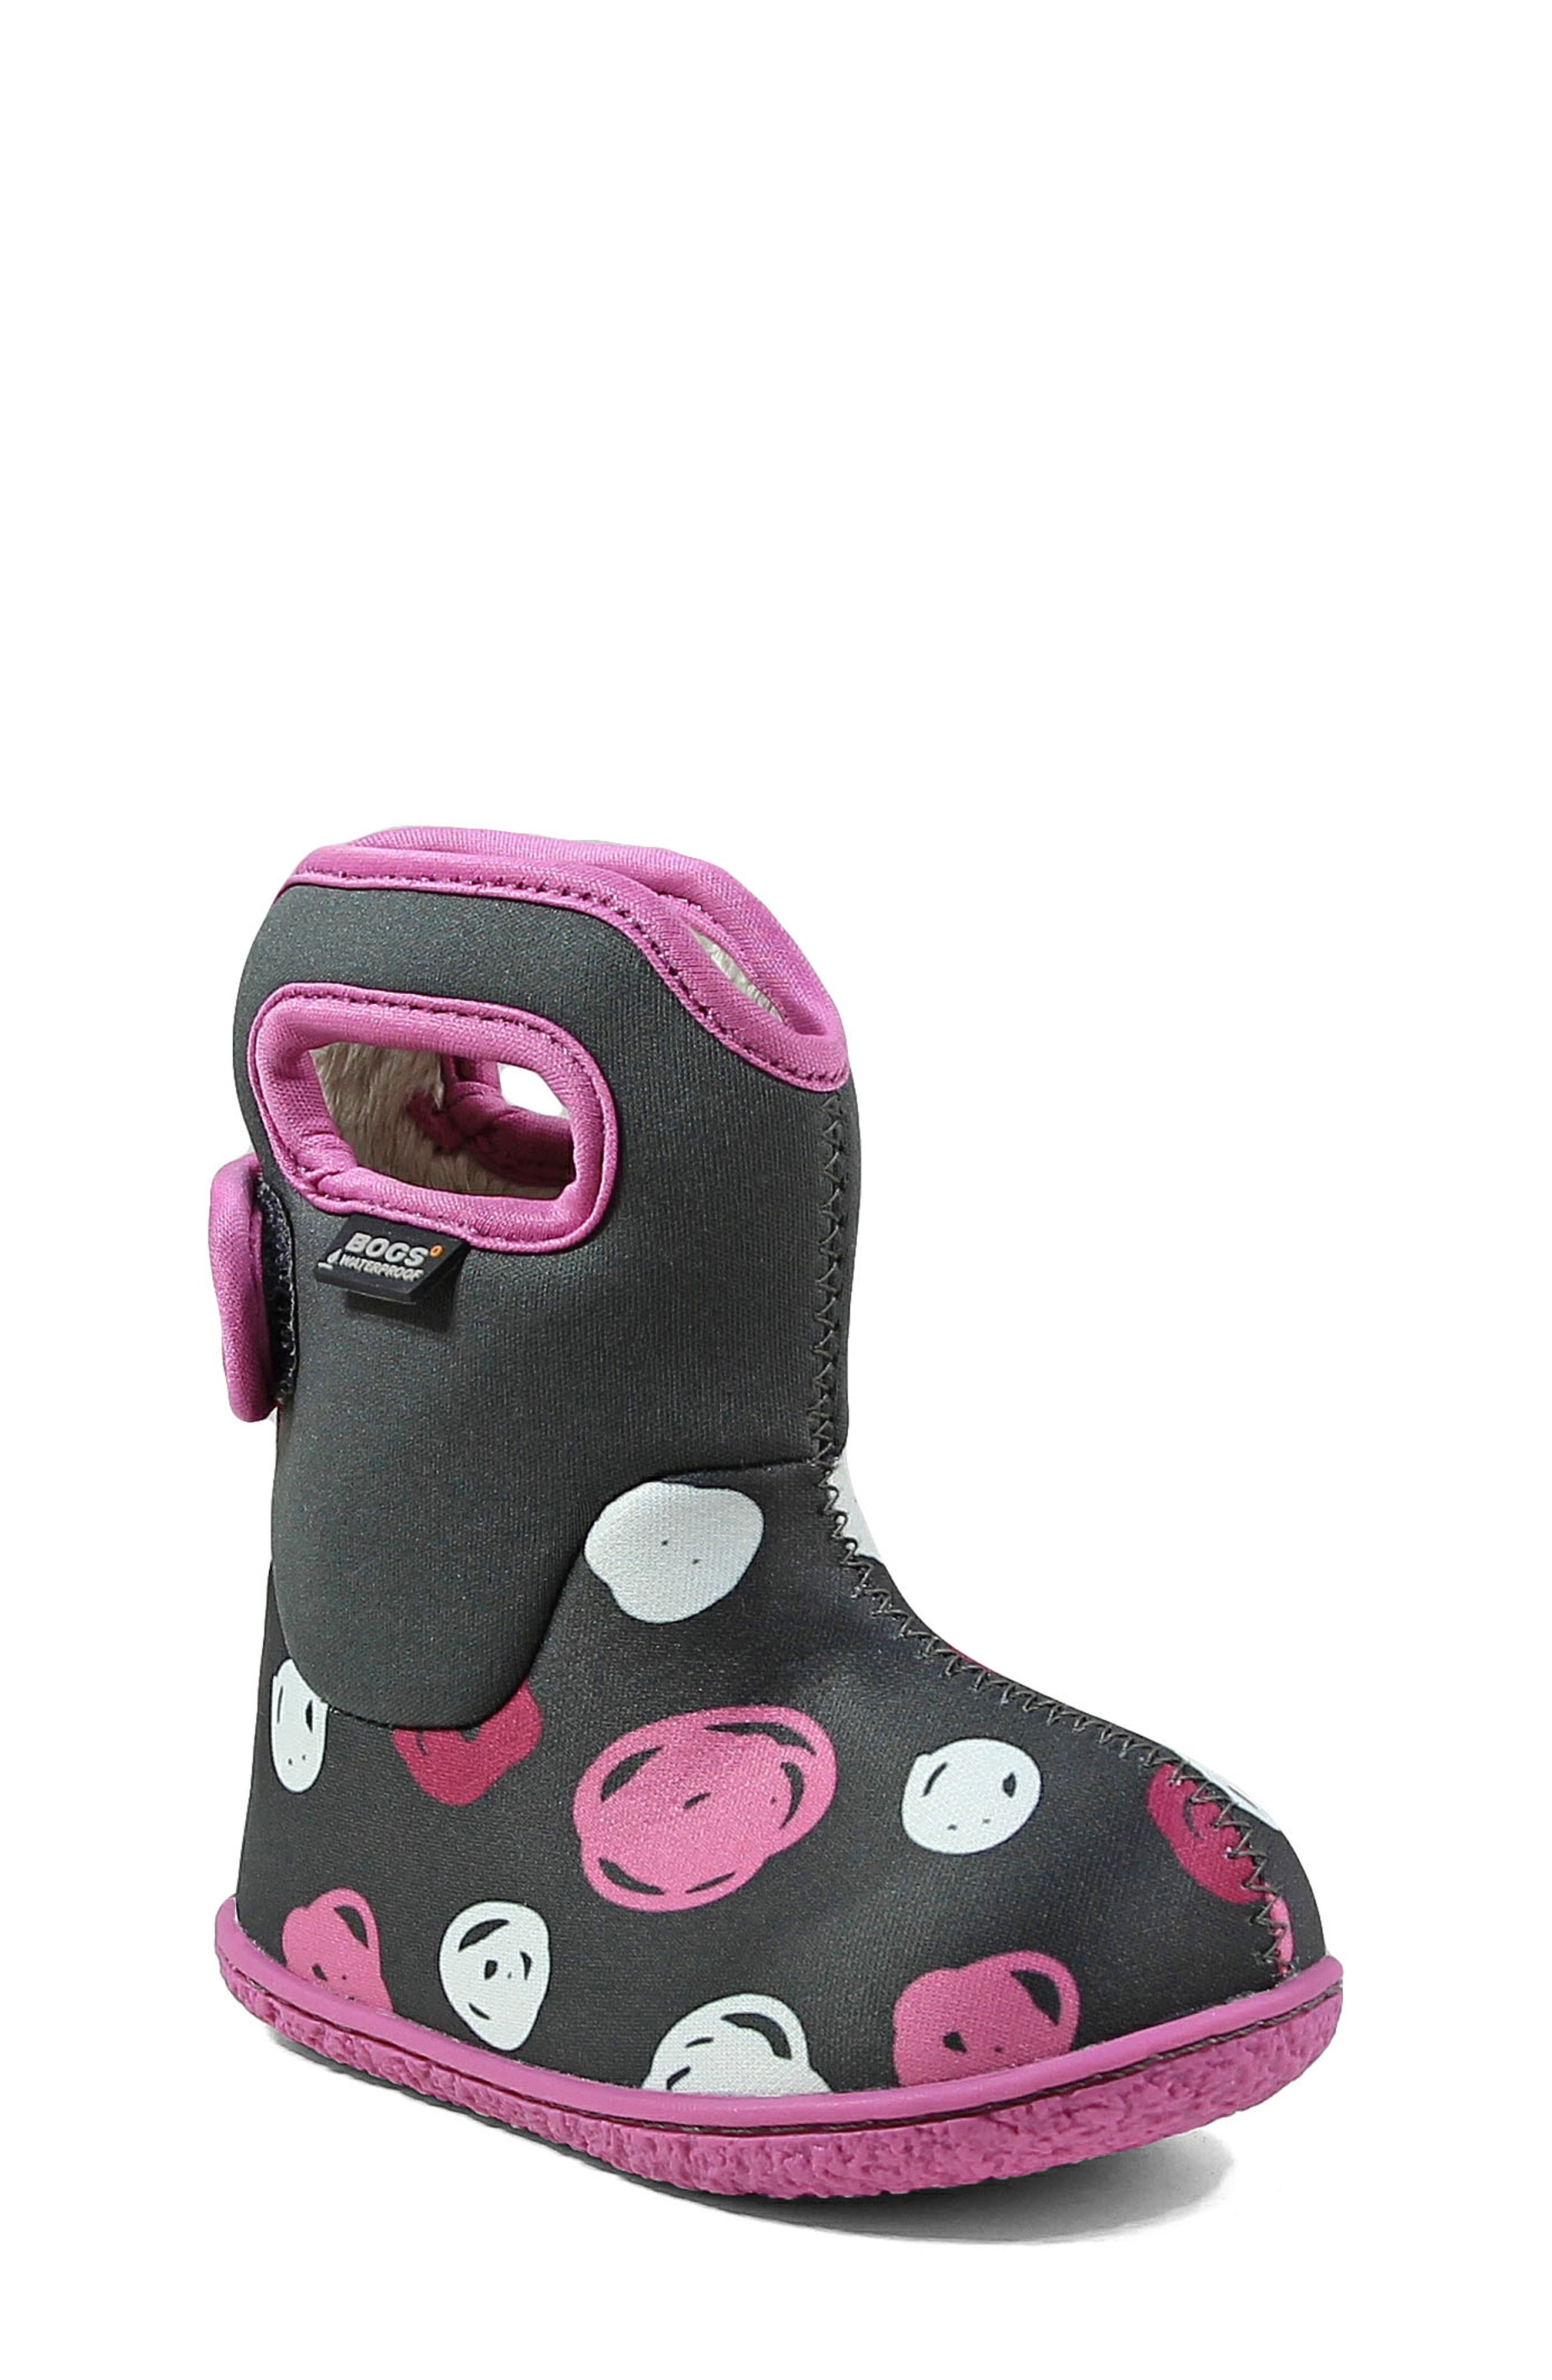 Baby Bogs Classic Sketched Dots Washable Insulated Waterproof Boot,                             Main thumbnail 1, color,                             DARK GRAY MULTI